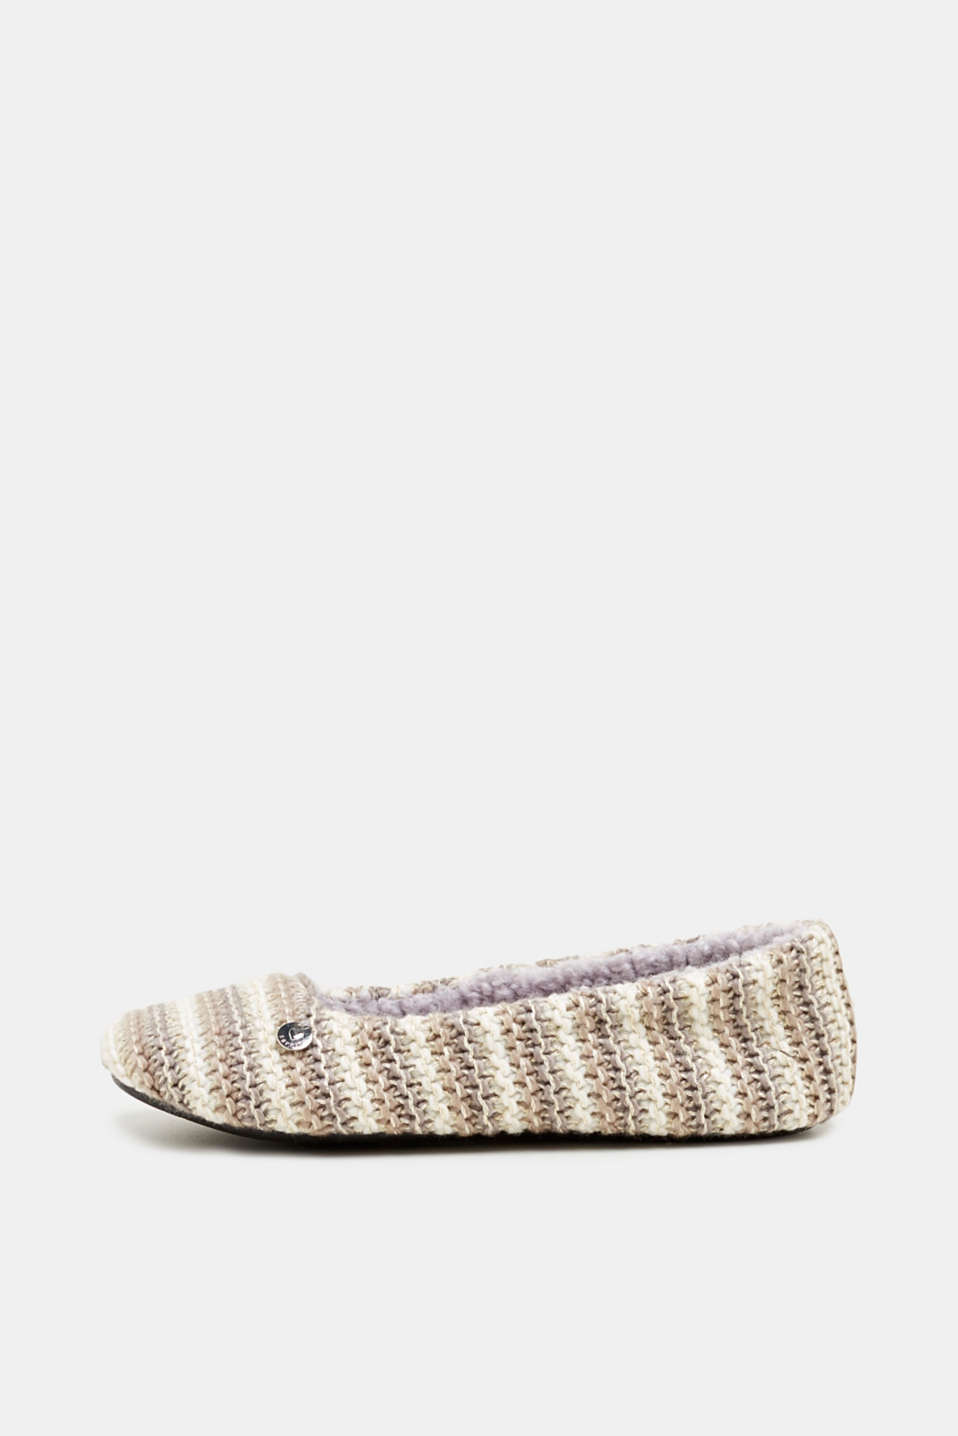 Esprit - Slip-ons made of a chunky knit